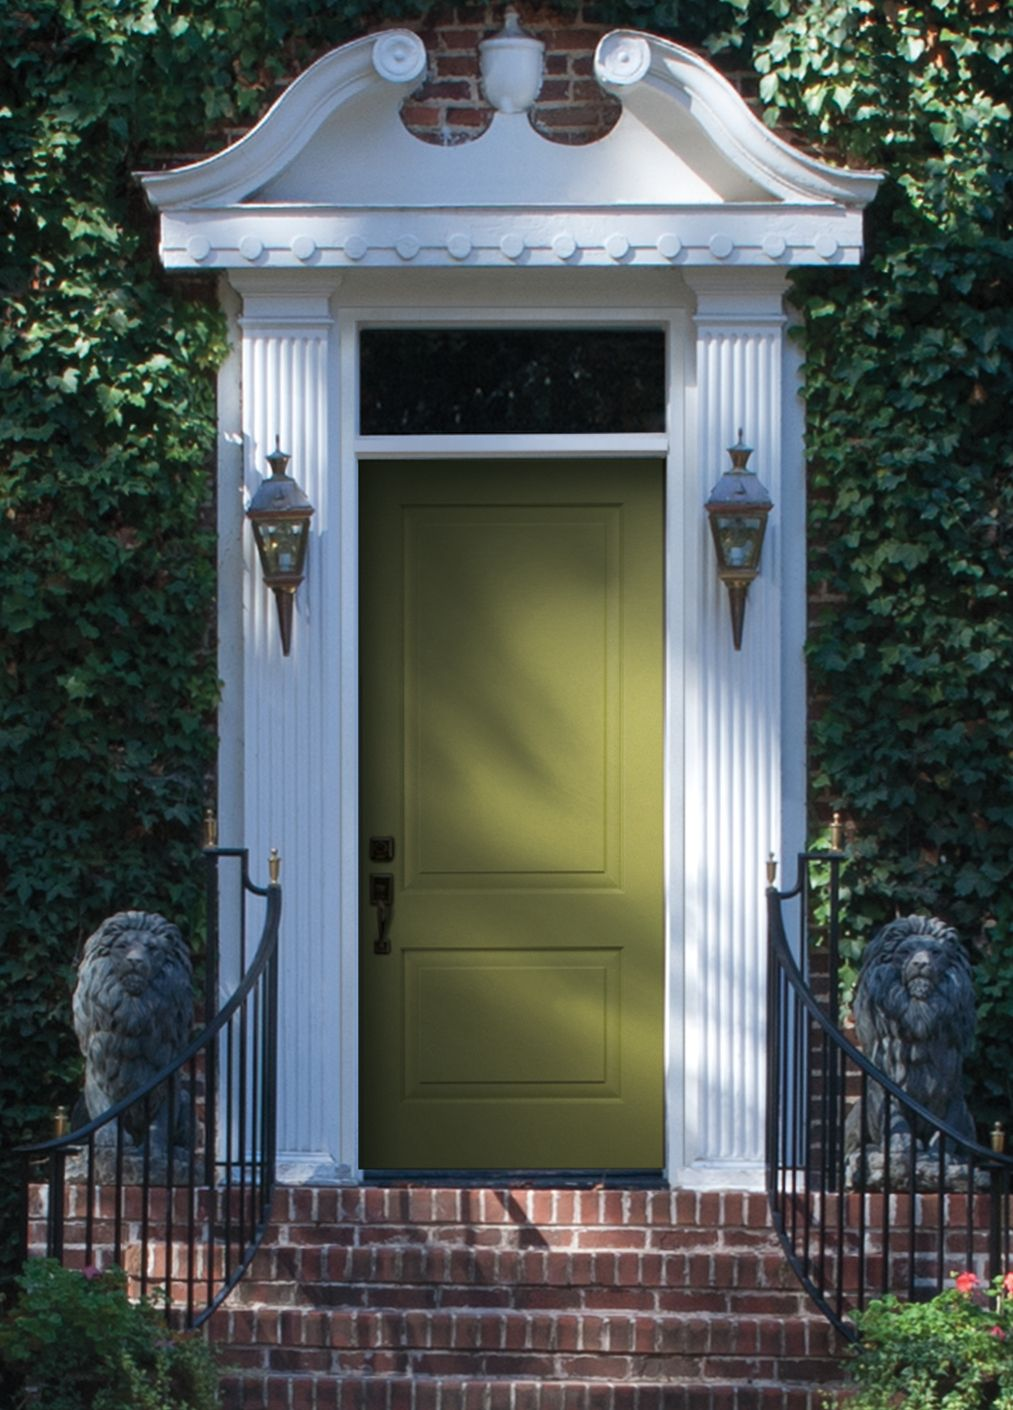 Pellau0027s new vibrant color collection reinvents entry door personality u2014 enhance your space with Energetic Green & Pellau0027s new vibrant color collection reinvents entry door ... pezcame.com